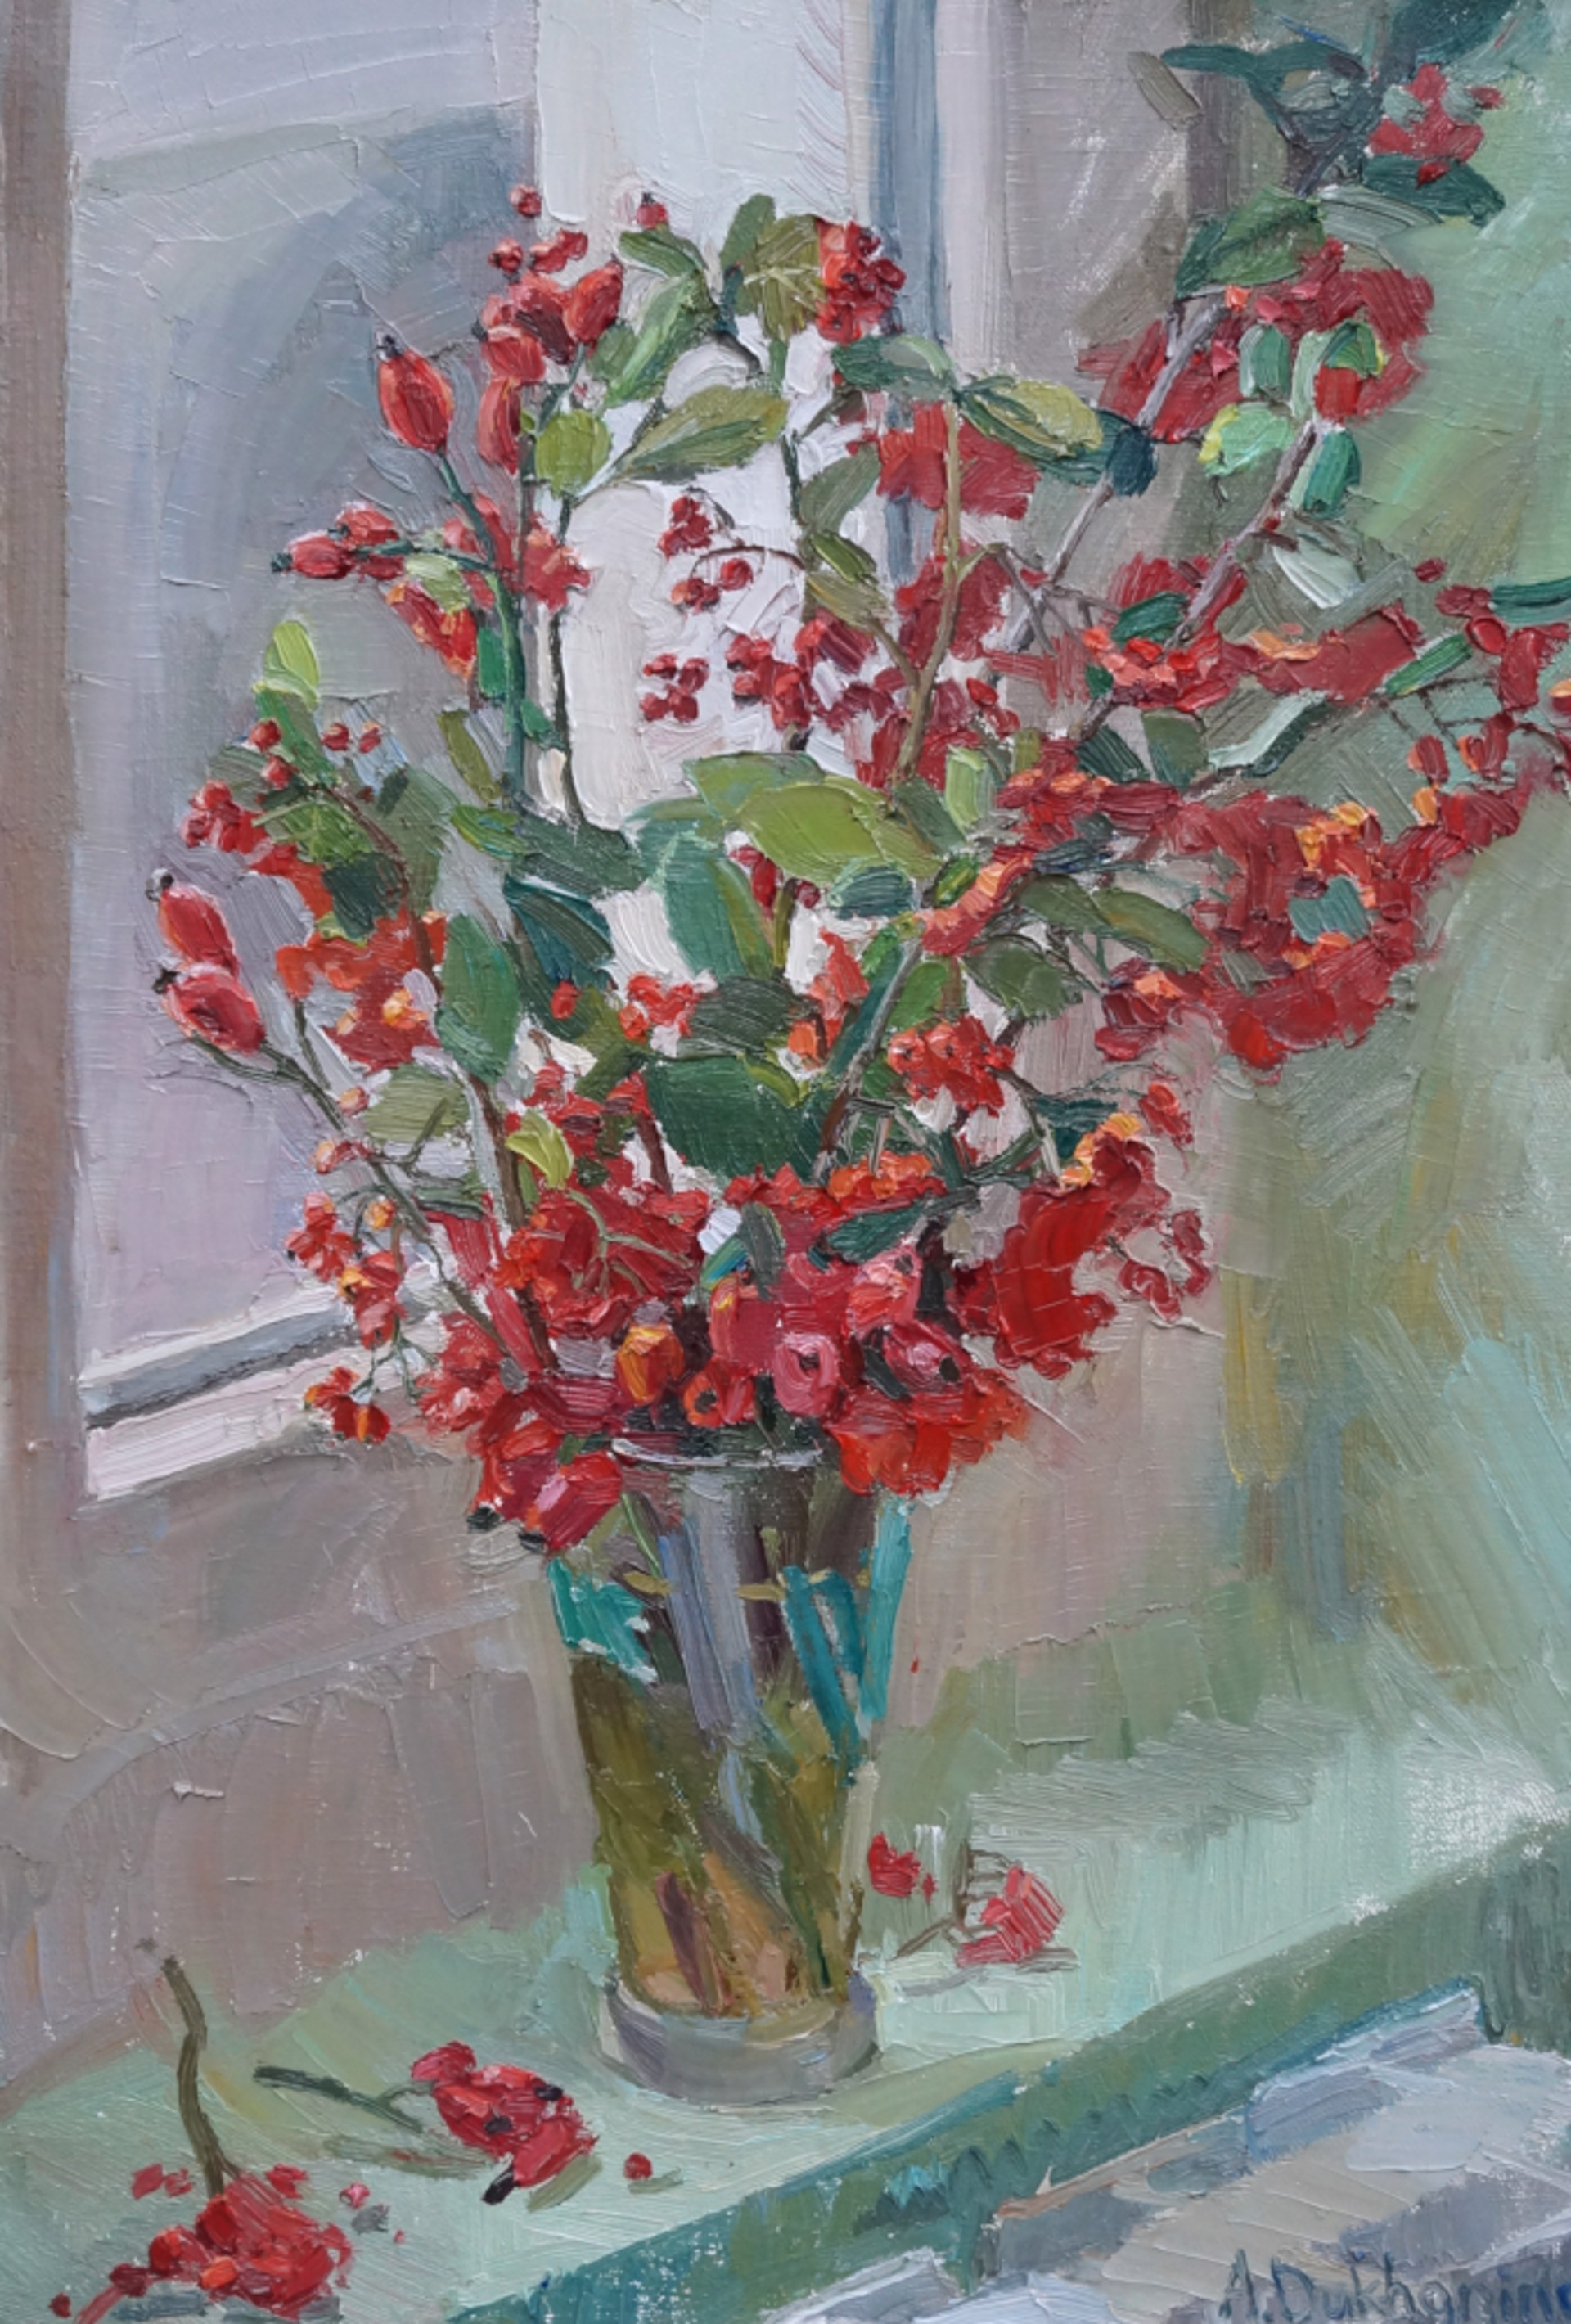 Winter Berries by Anastasia Dukhanina